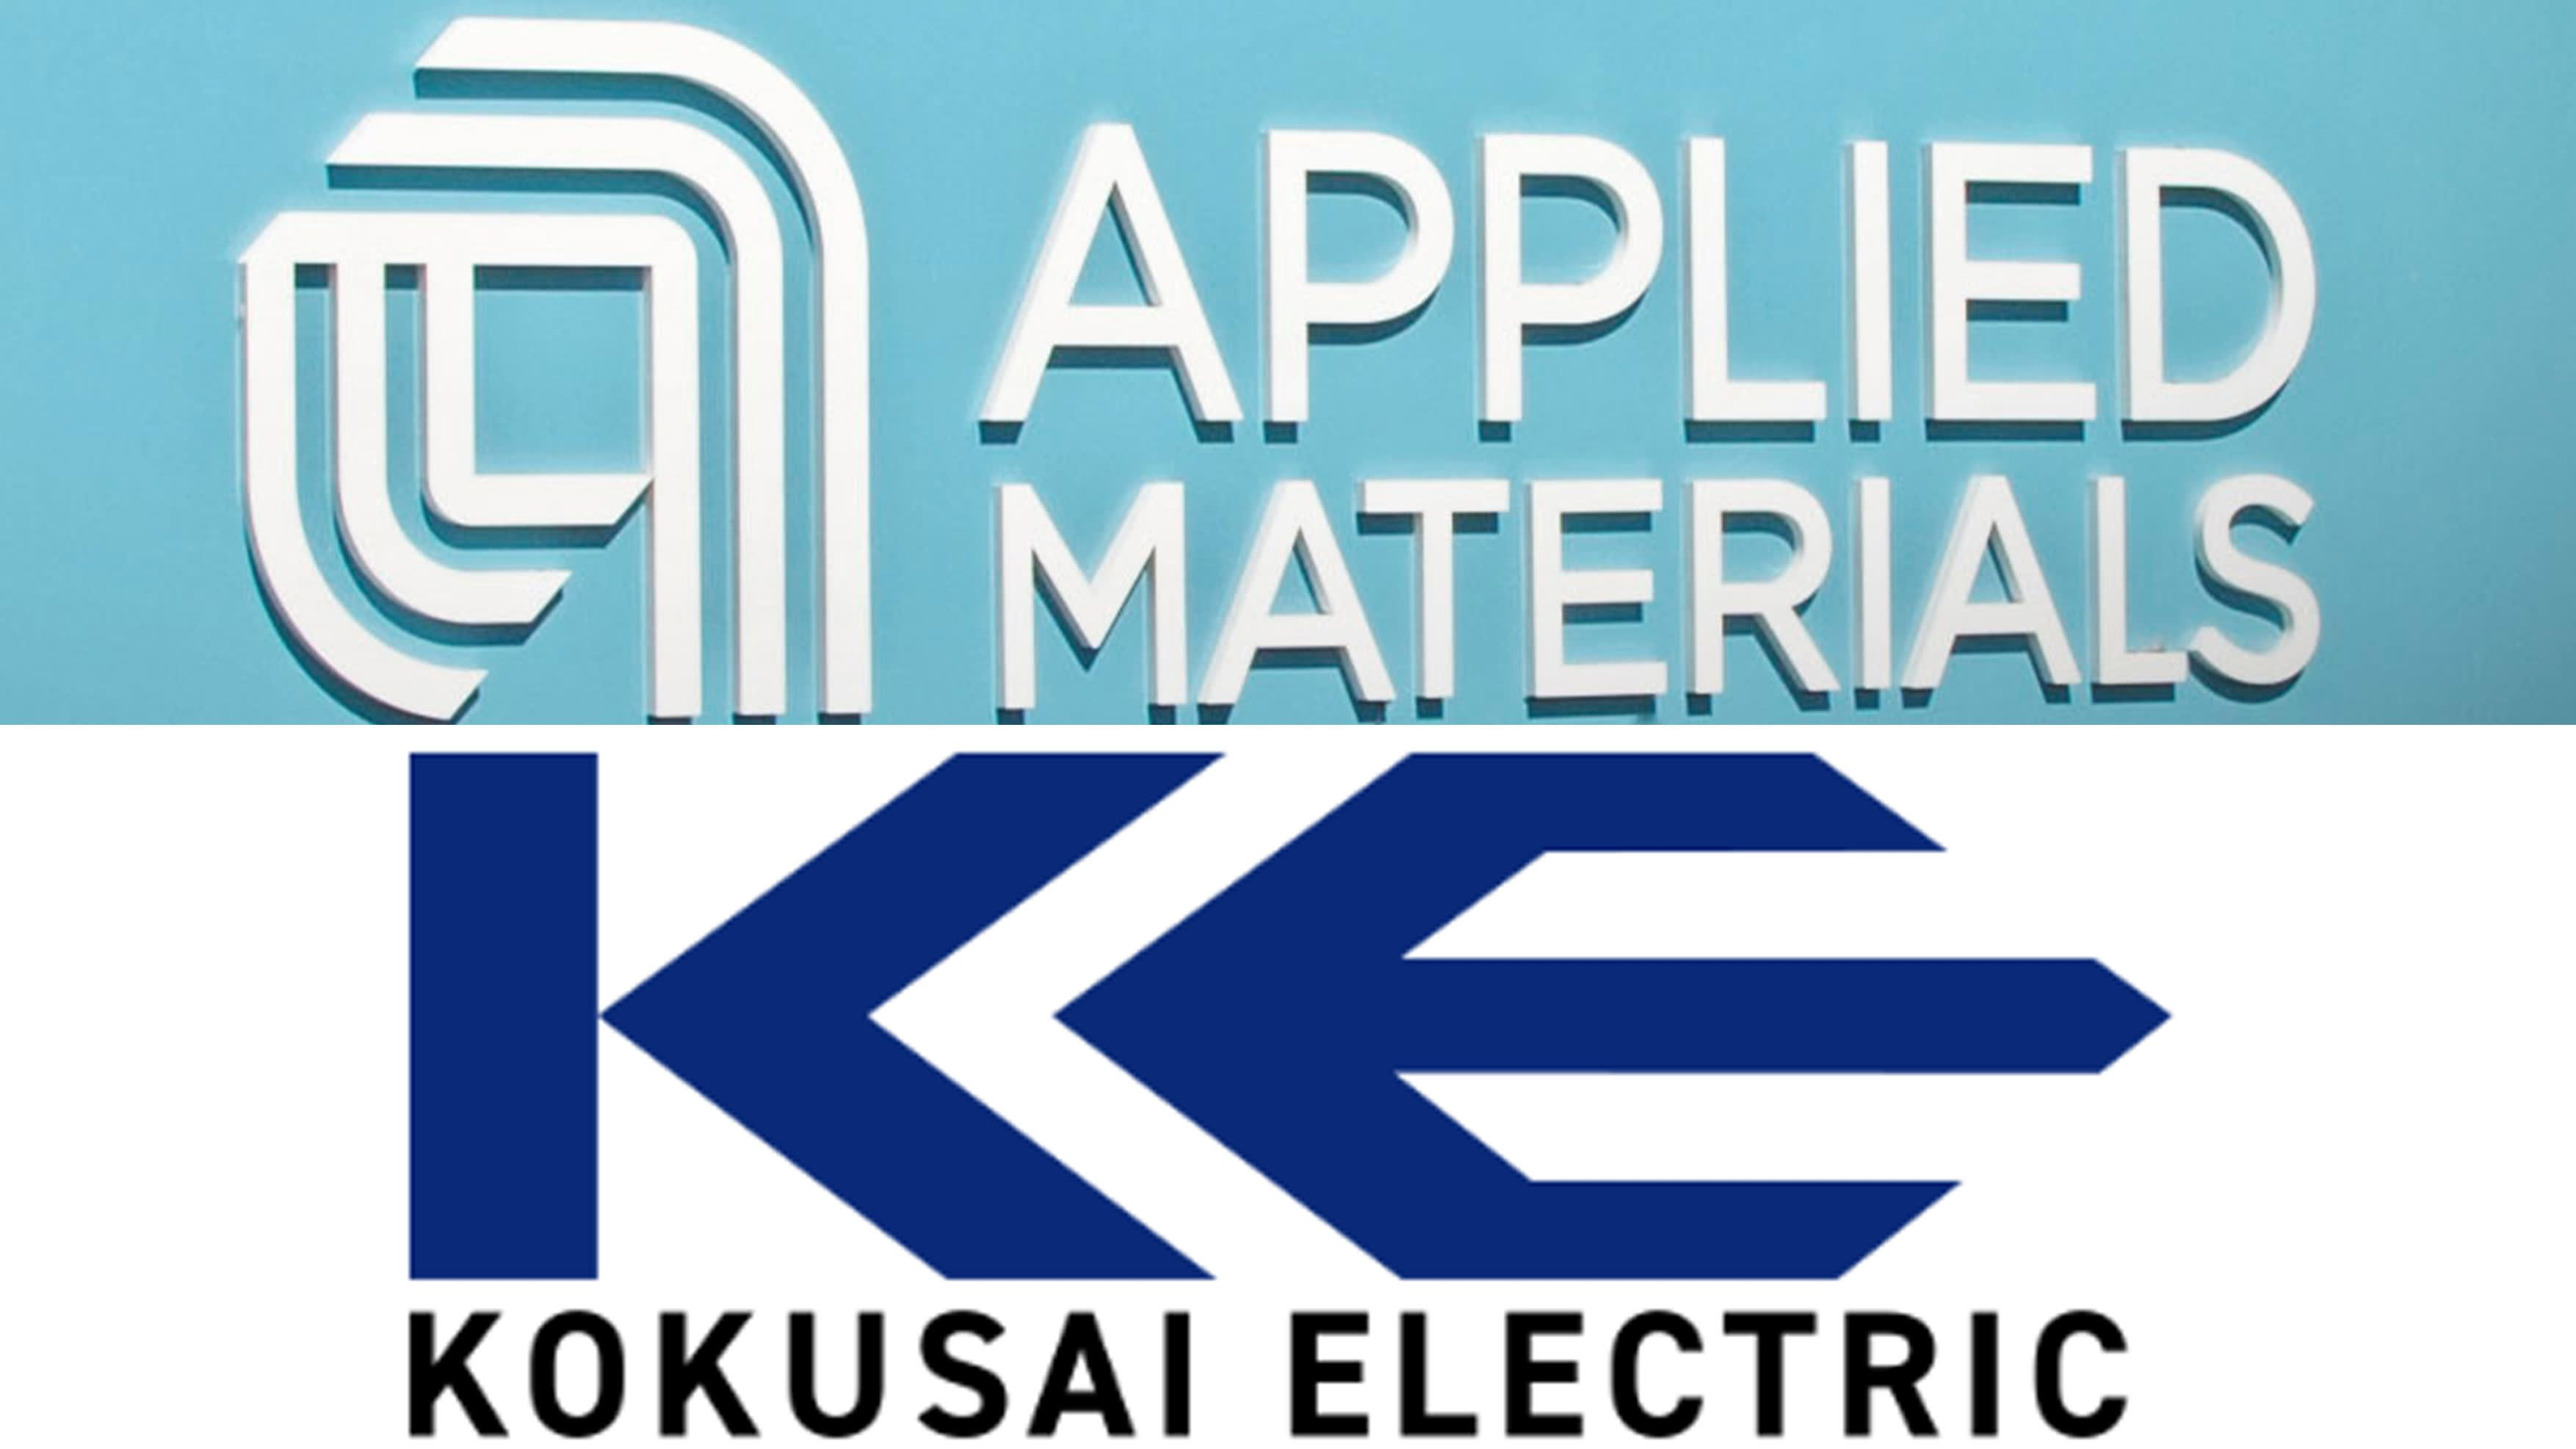 Exclusive: Applied Materials to buy KKR\'s Kokusai Electric.